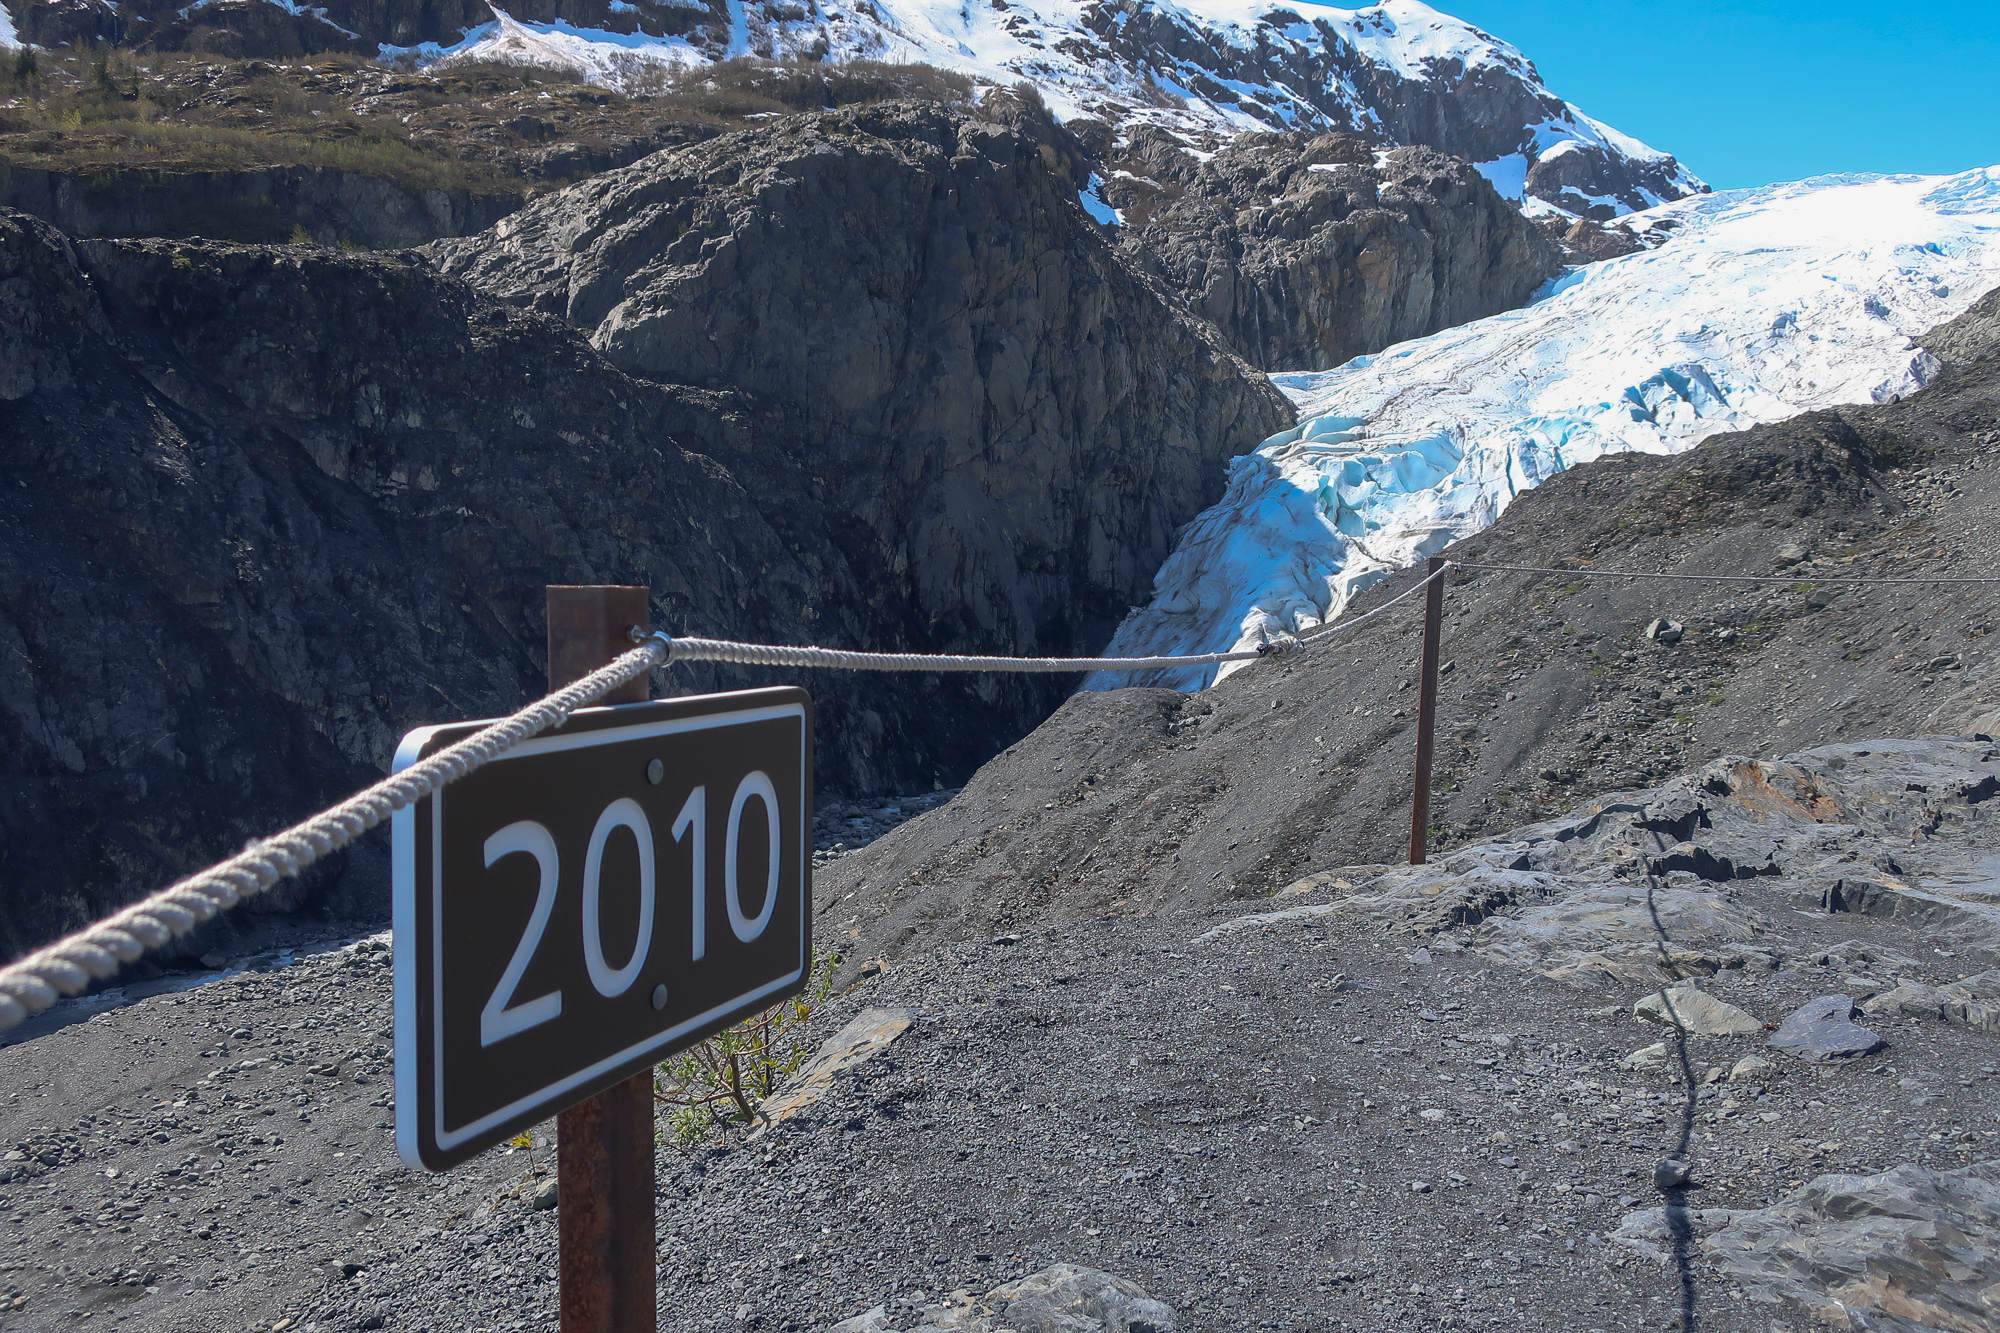 exit glacier interpretative sign marks where the glacier was in 2010, about a half-mile from where the glacier starts today